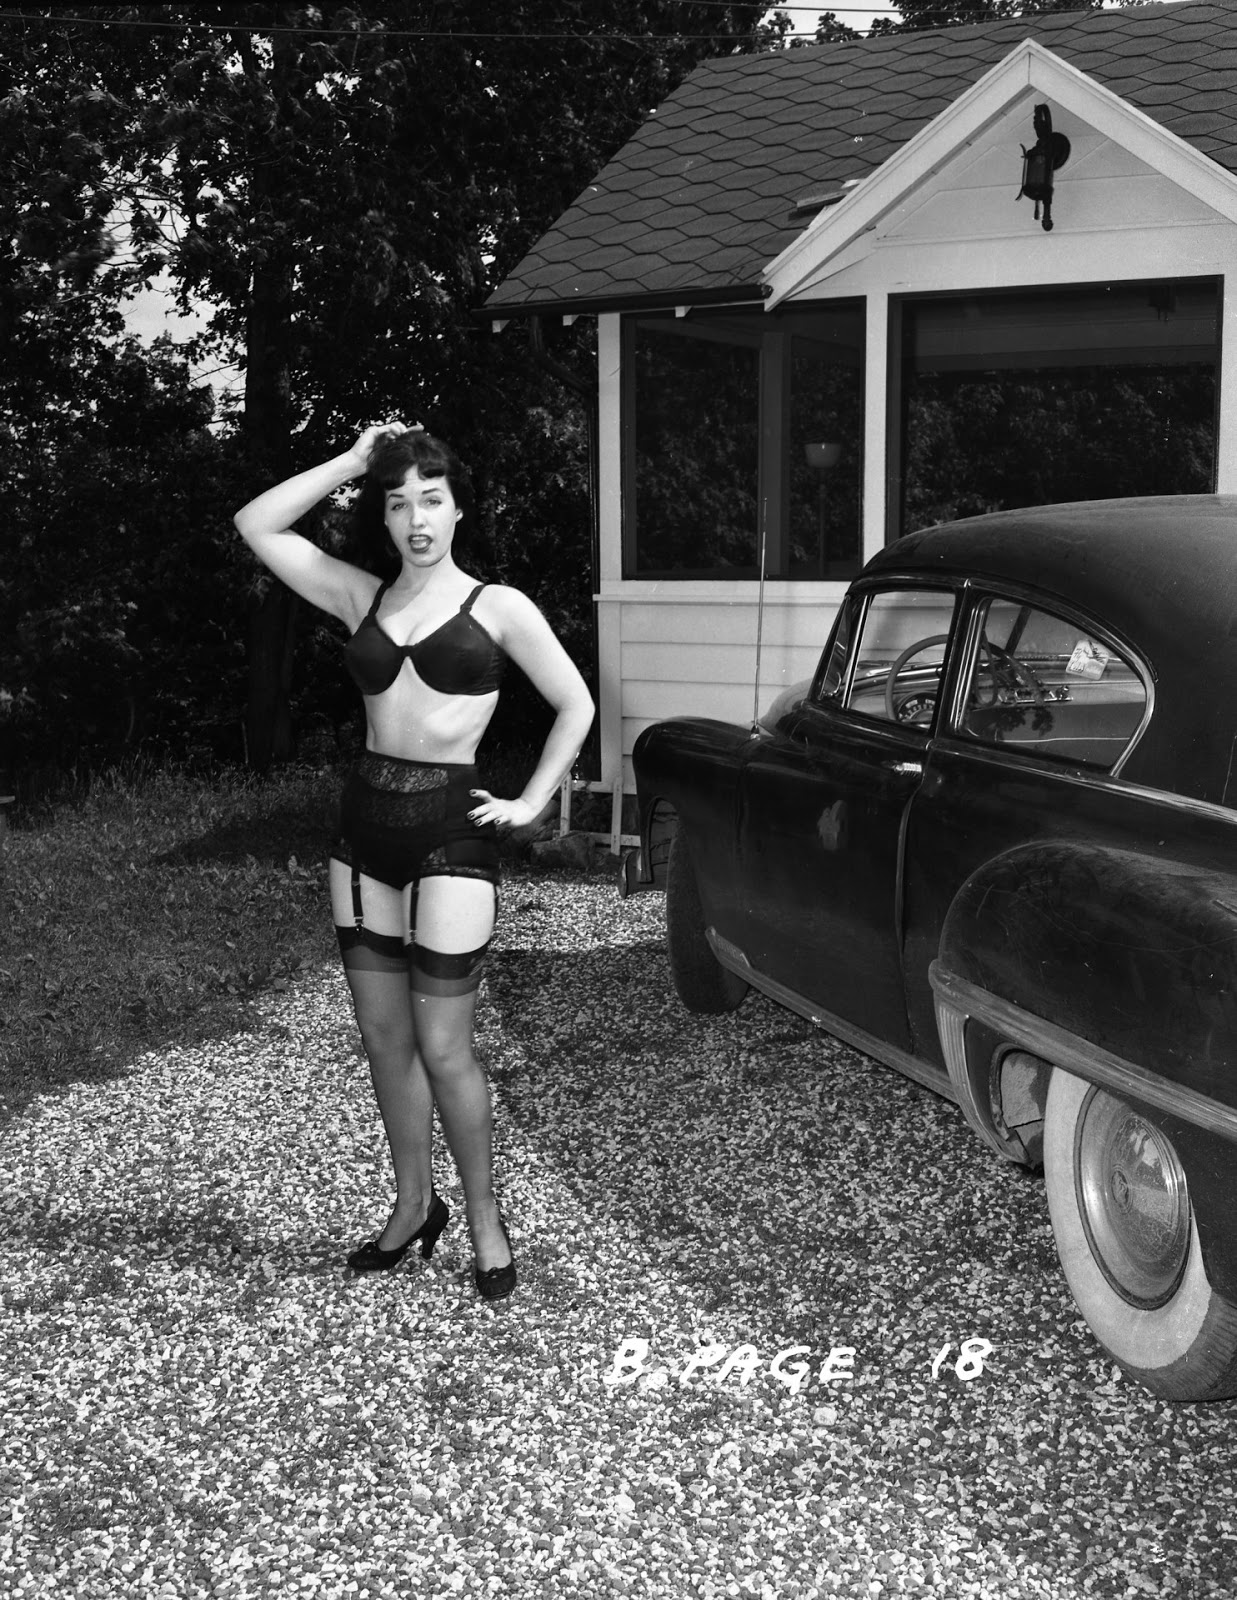 Betty Page Photos: These Rare Photographs Of '50s Pinup Queen Bettie Page